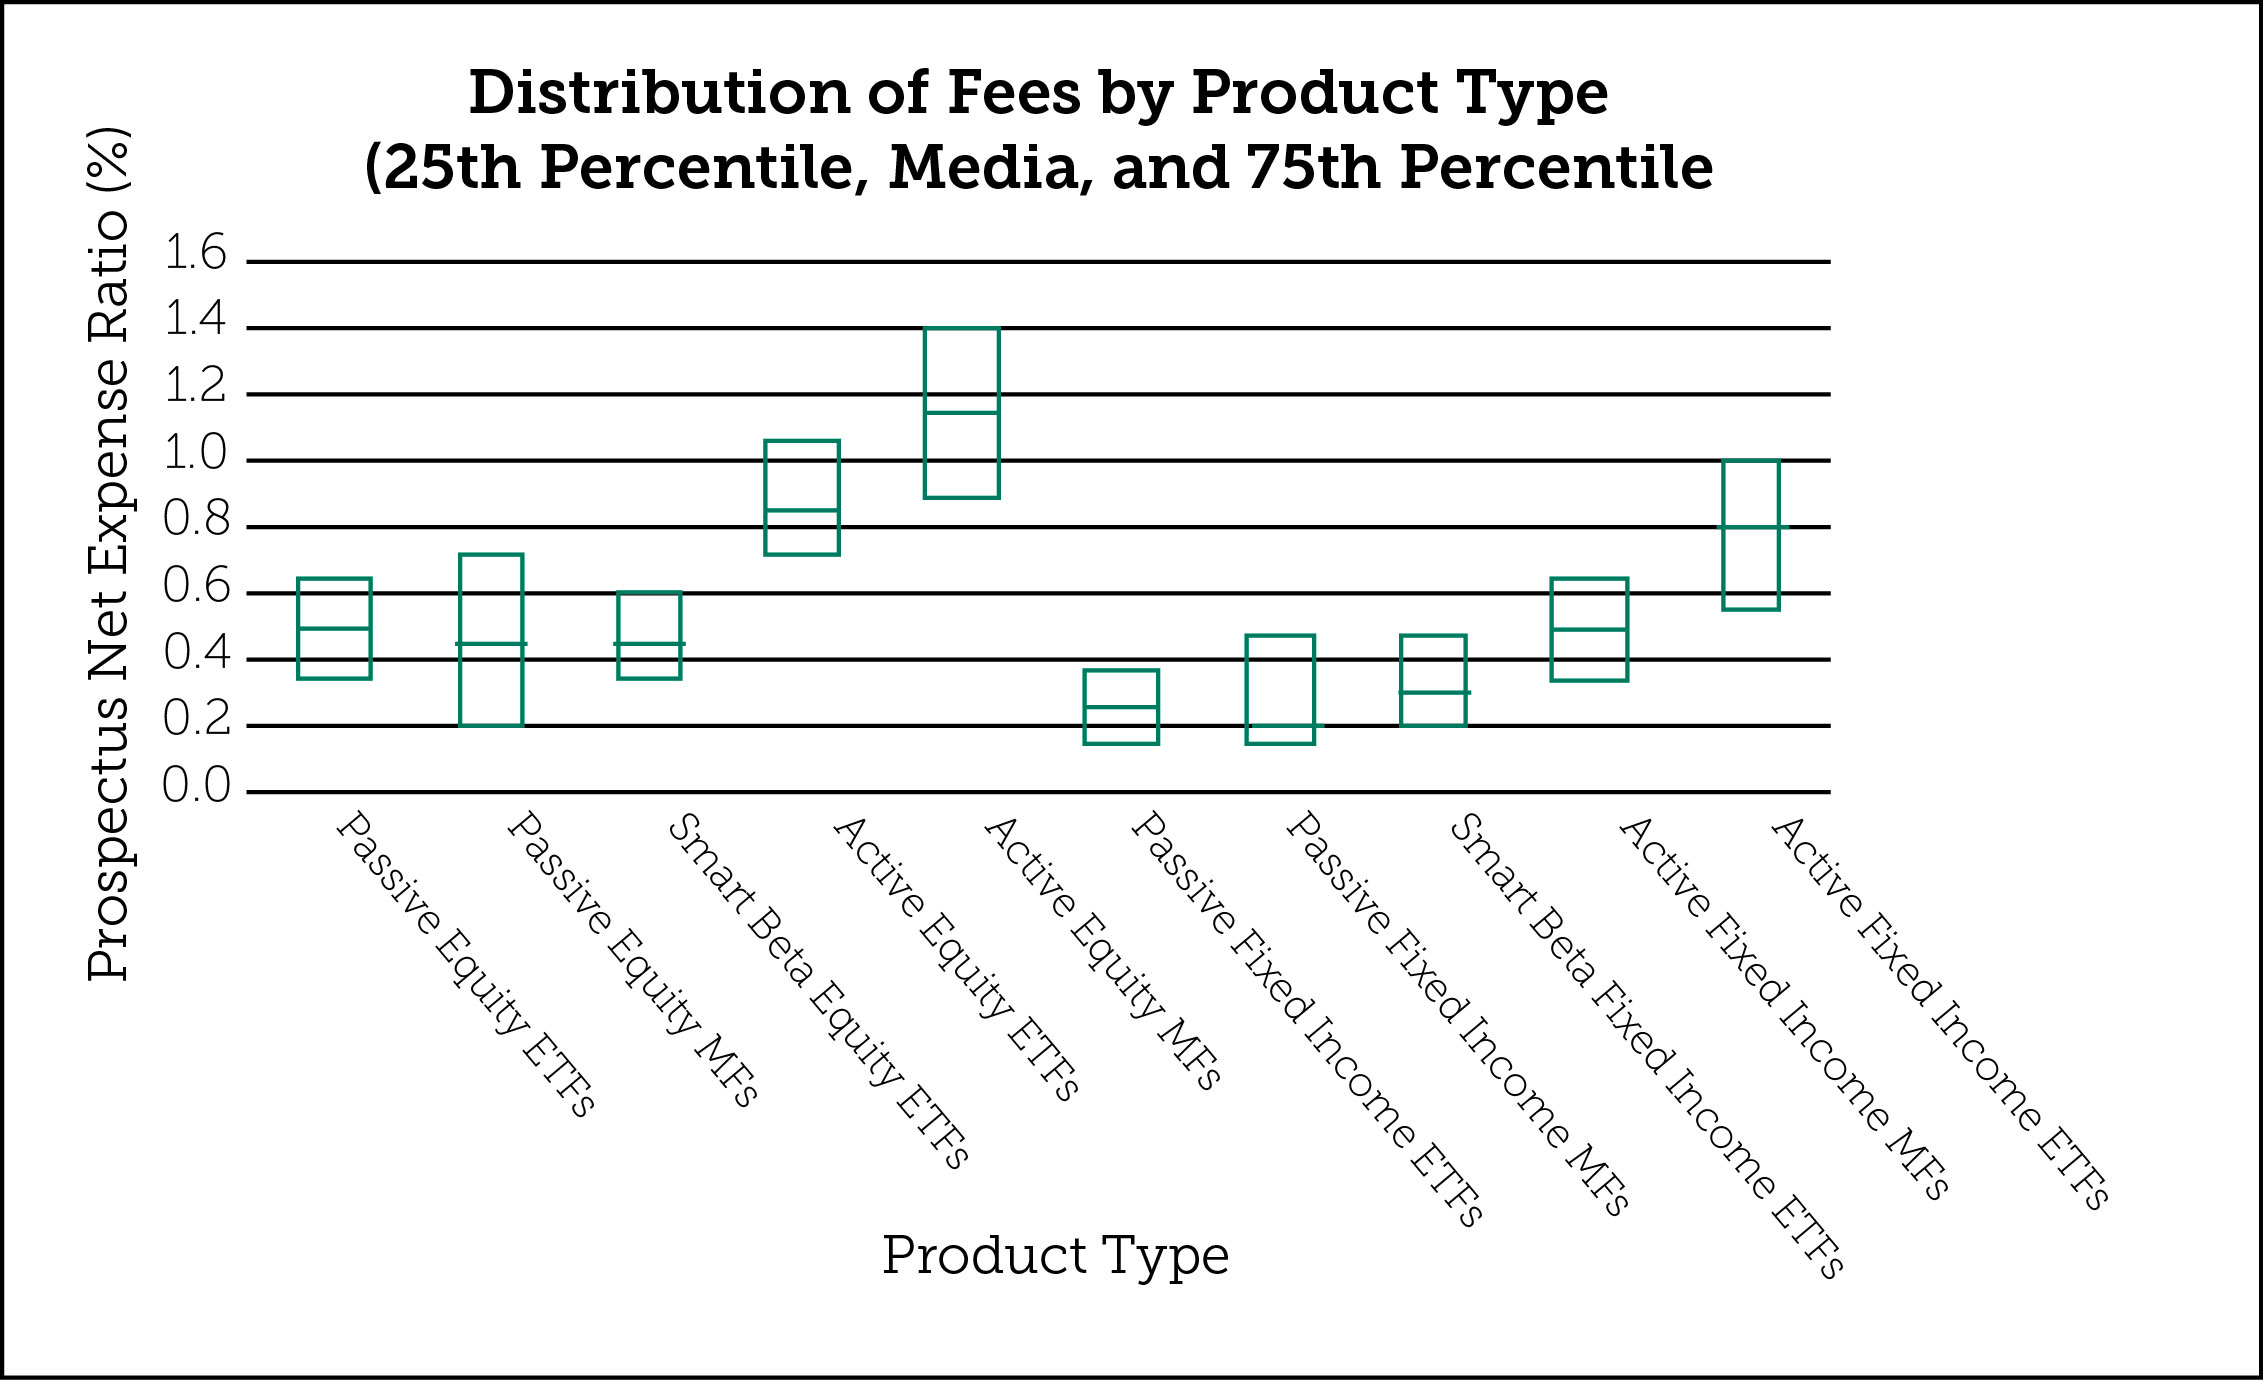 Distribution of Fees